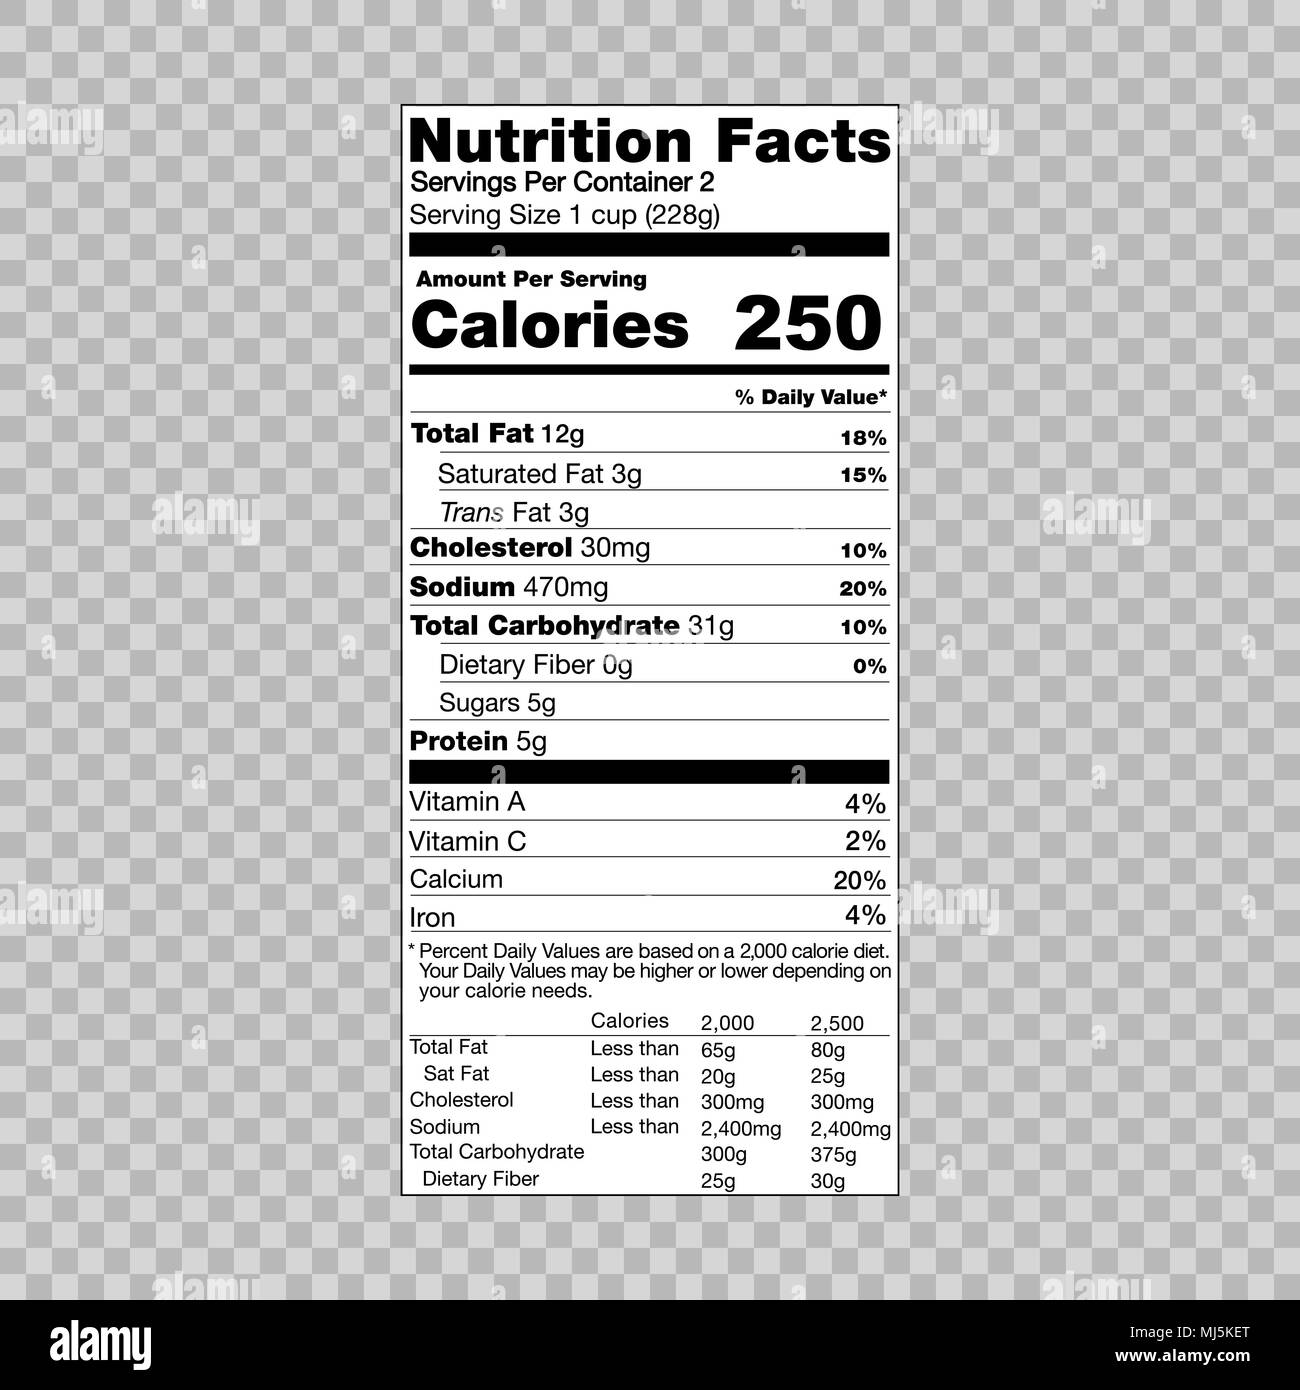 nutrition facts information template for food label stock vector art